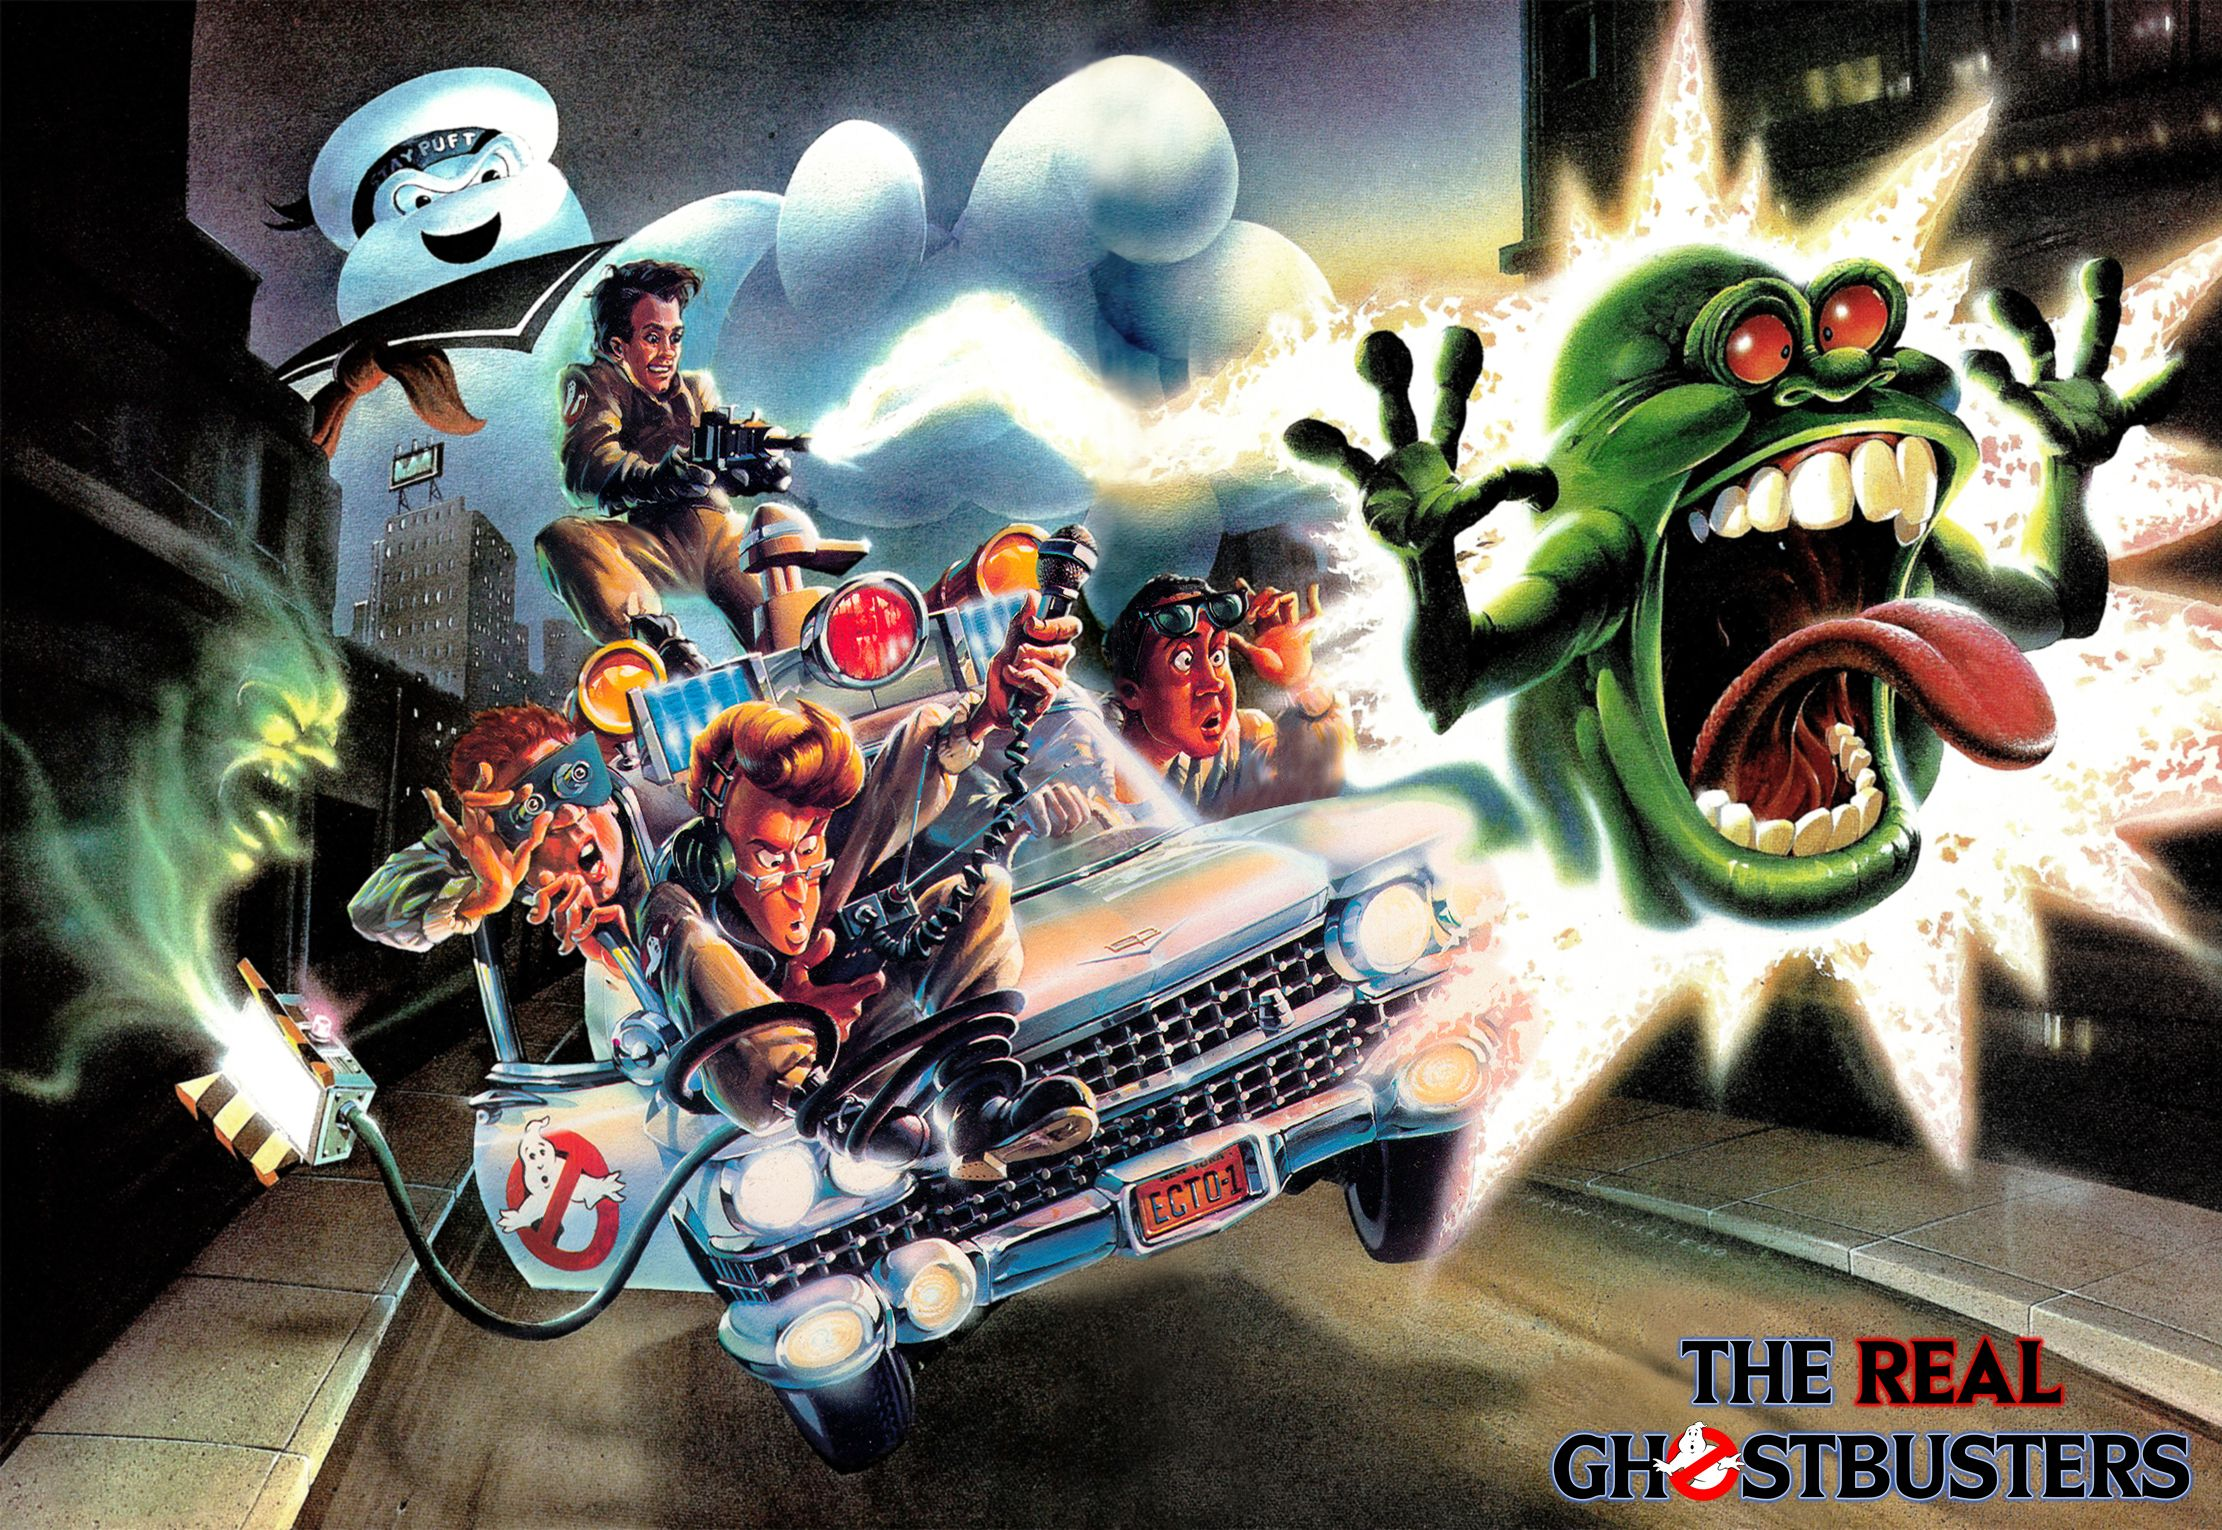 Pin On The Real Ghostbusters